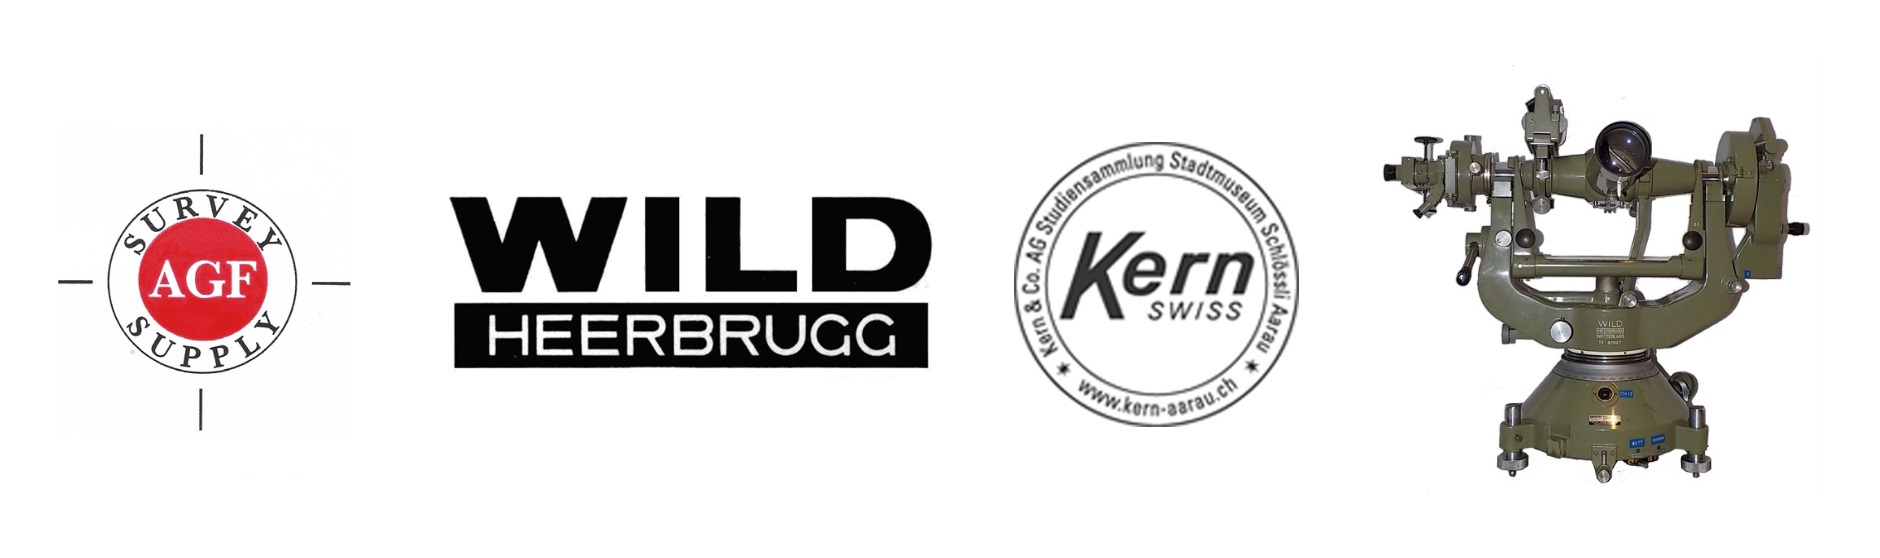 Kern Swiss & Wild Heerbrugg Surveying equipment